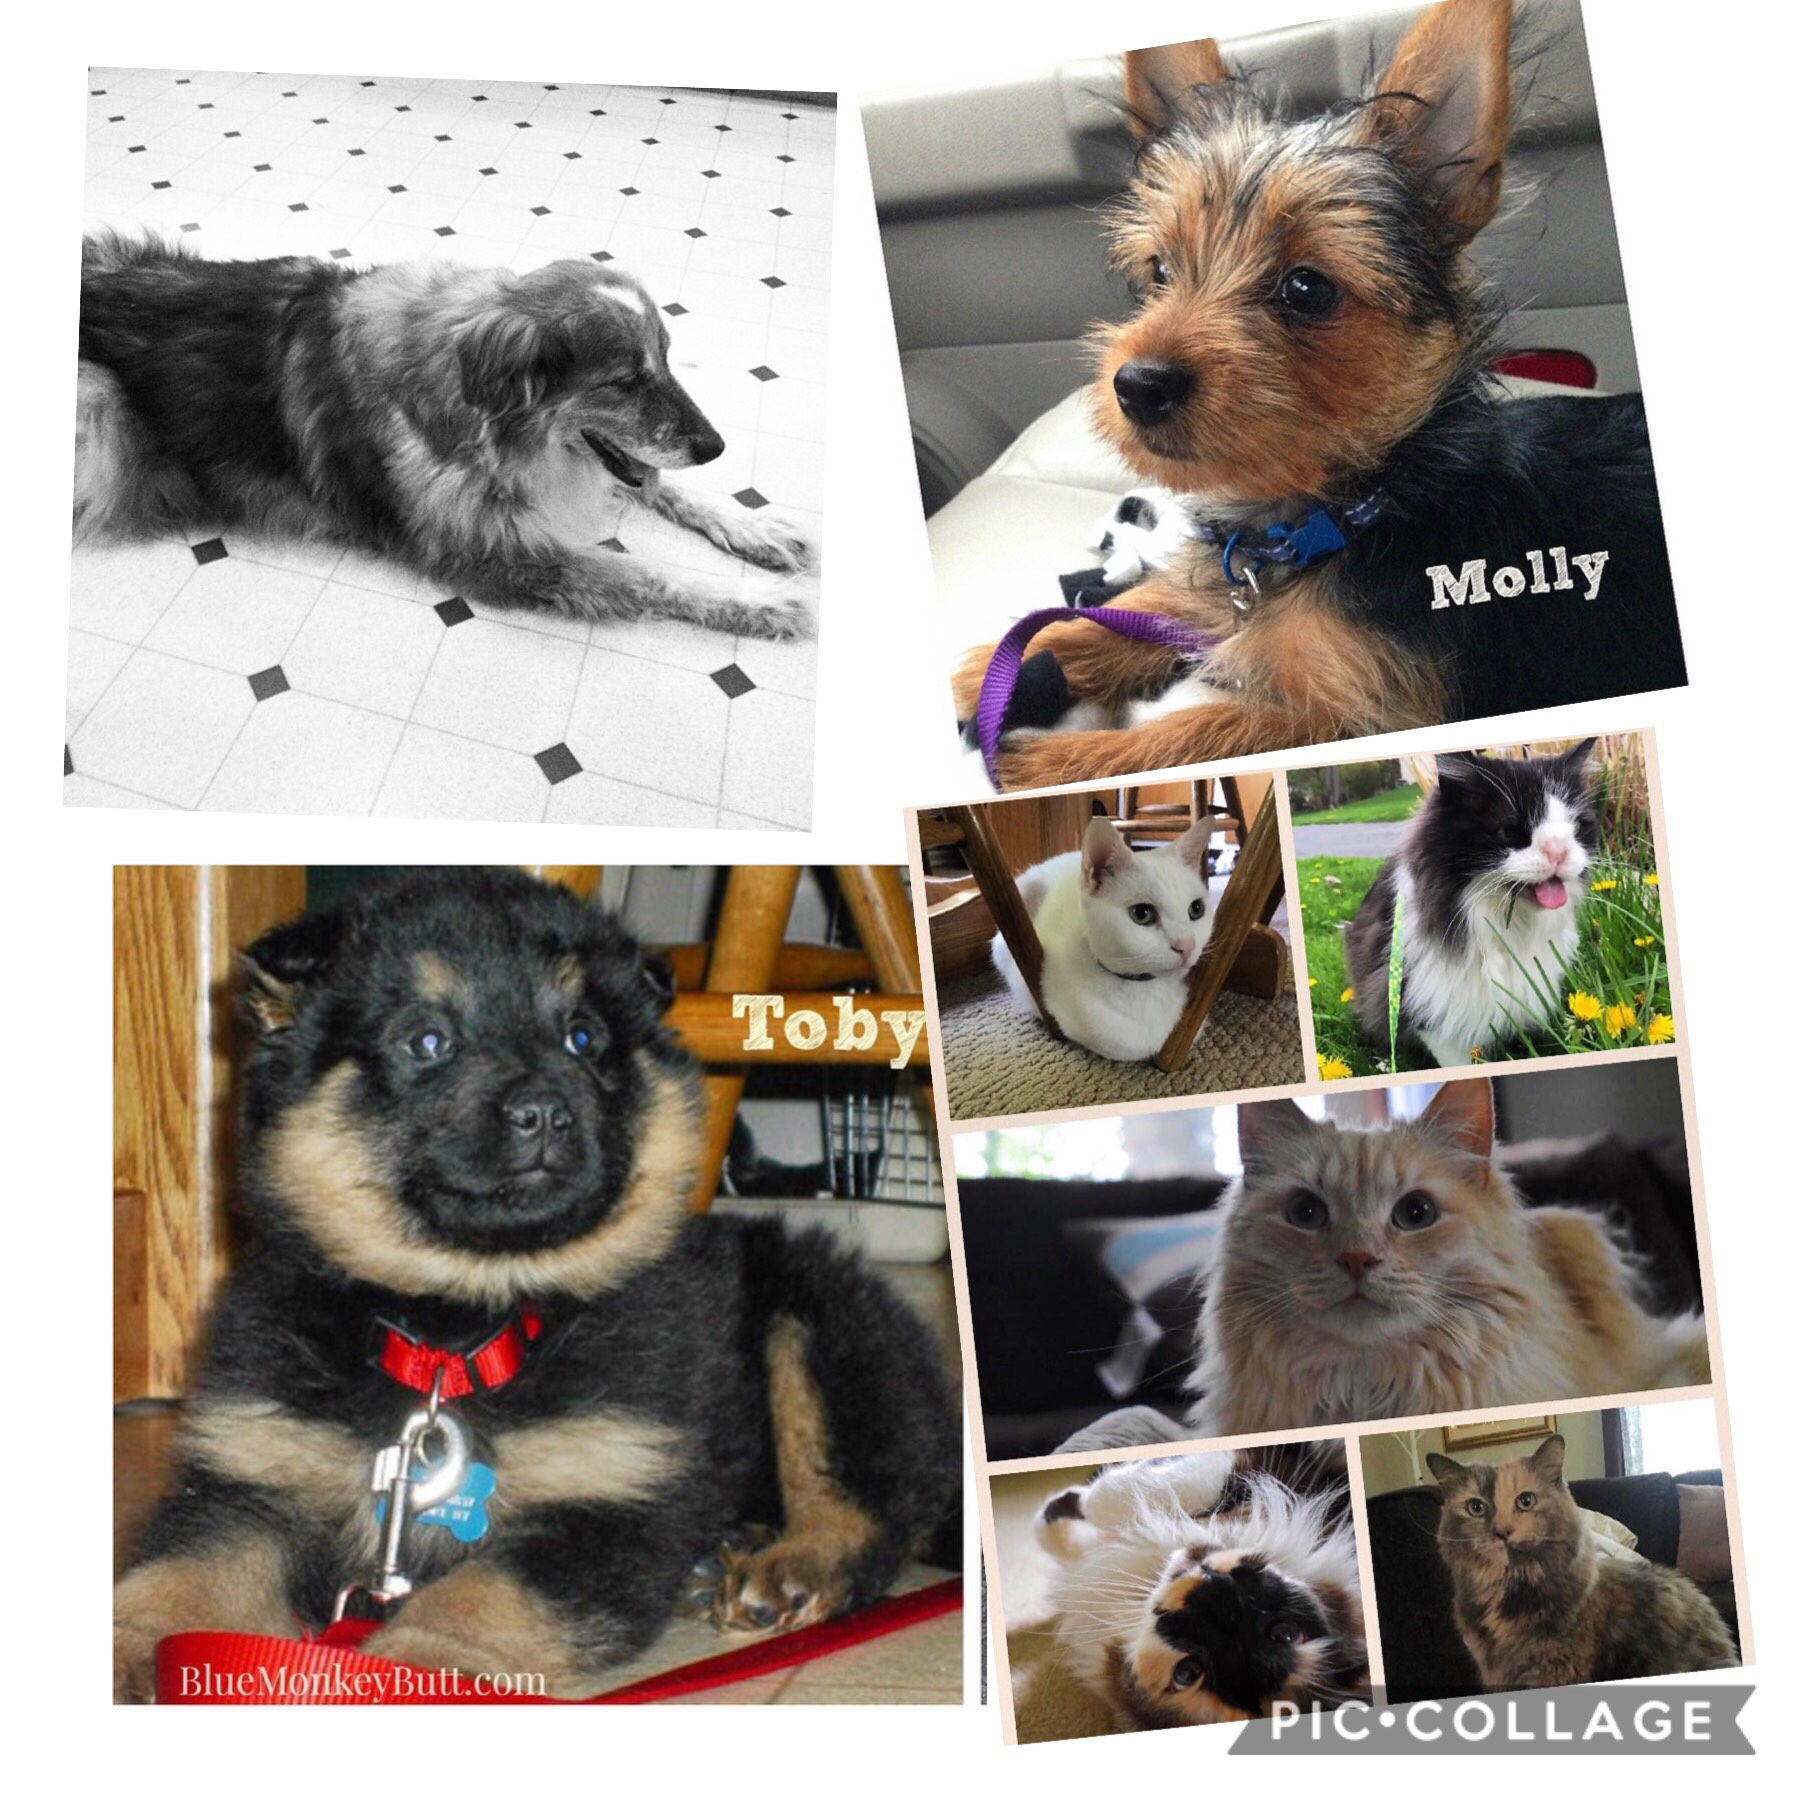 Collage of cats and dogs